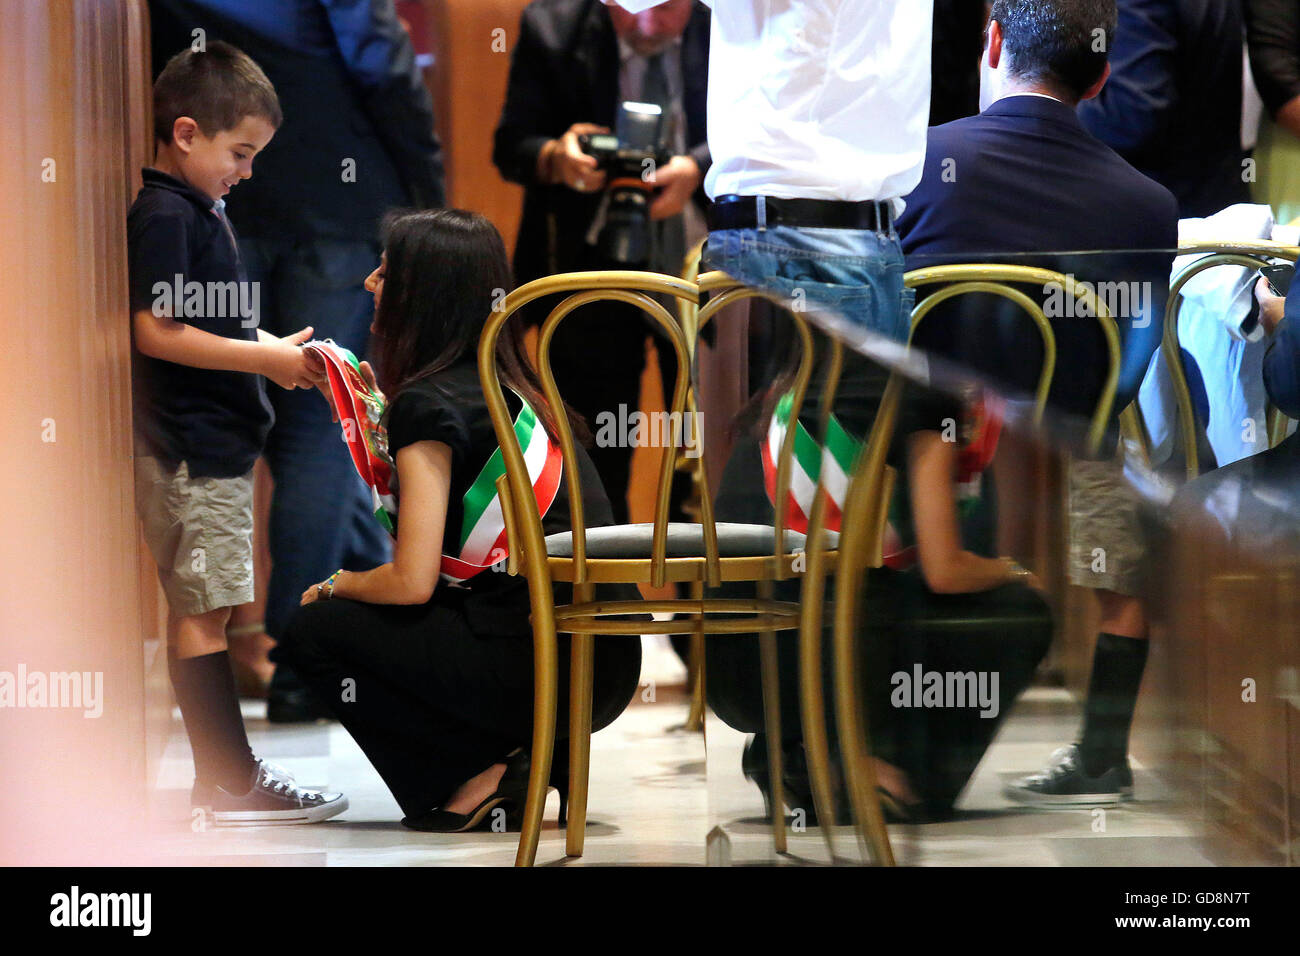 Virginia Raggi with his son Rome 7th July 2016. Campidoglio, first session of the Capitoline Assembly with the new - Stock Image